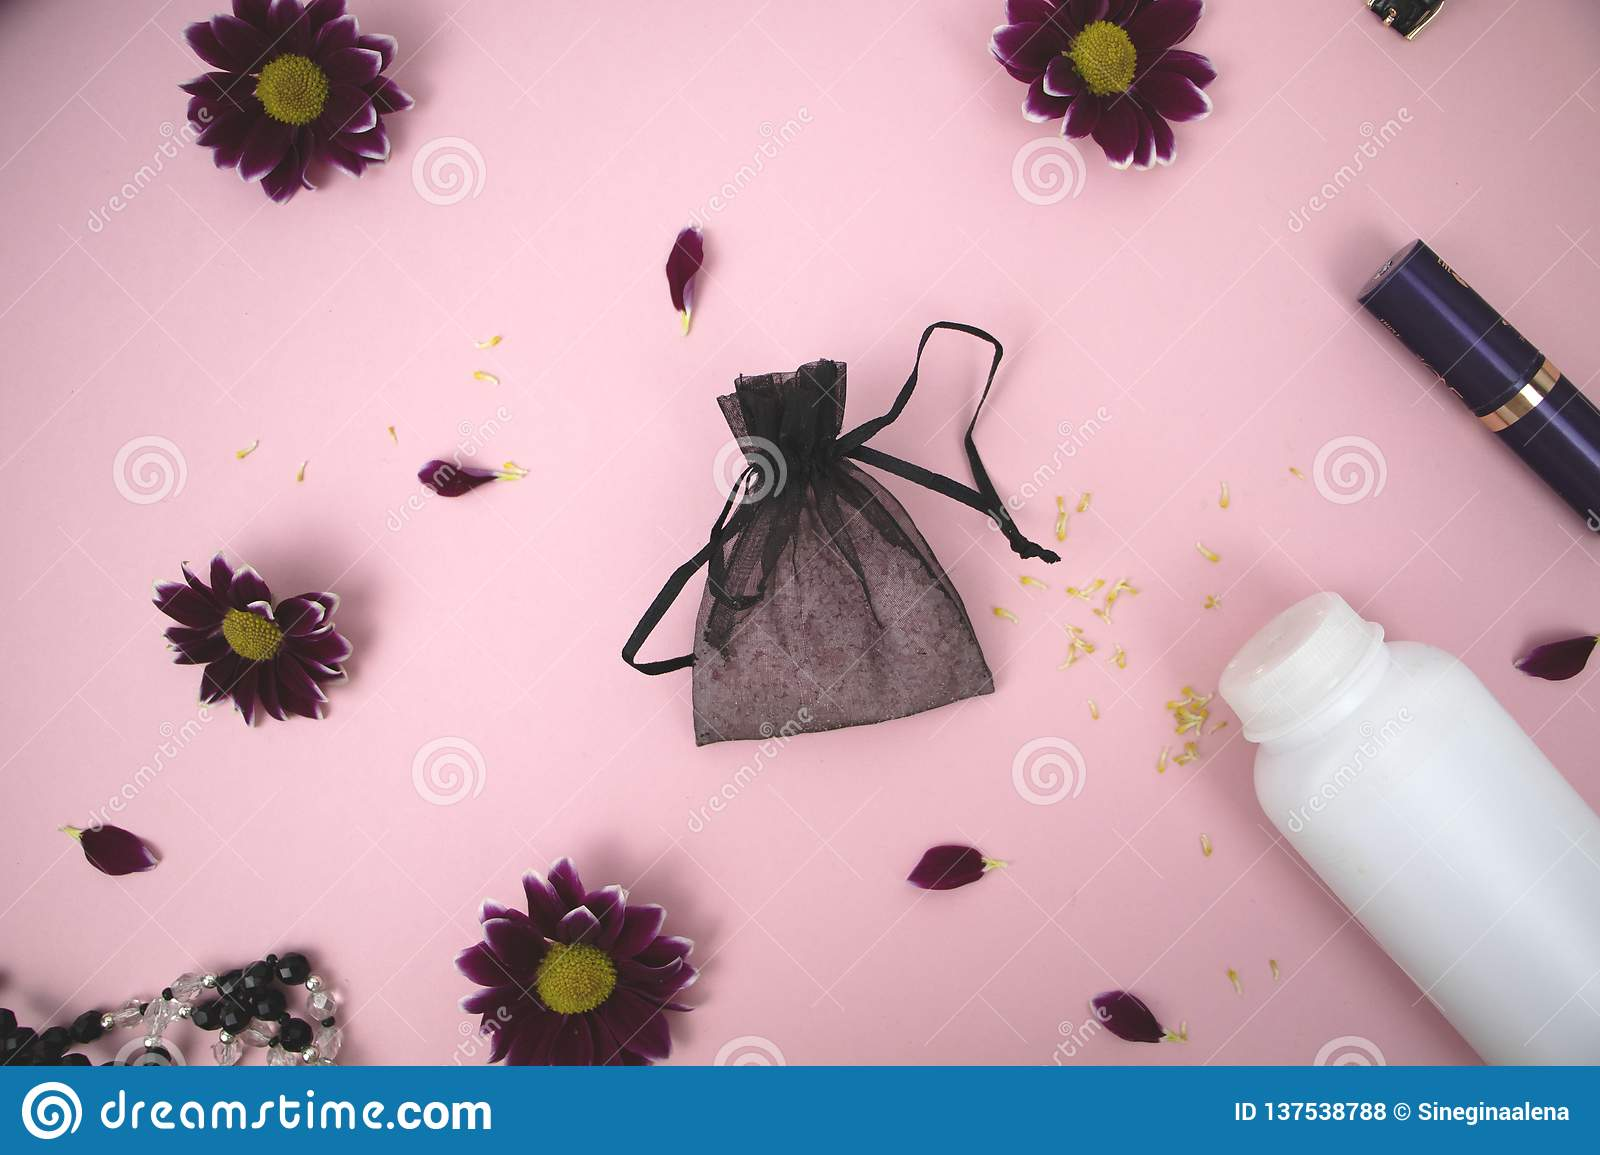 Cosmetics on the table at the woman. Cosmetic bag, cosmetic and hygiene products. Pink background for text